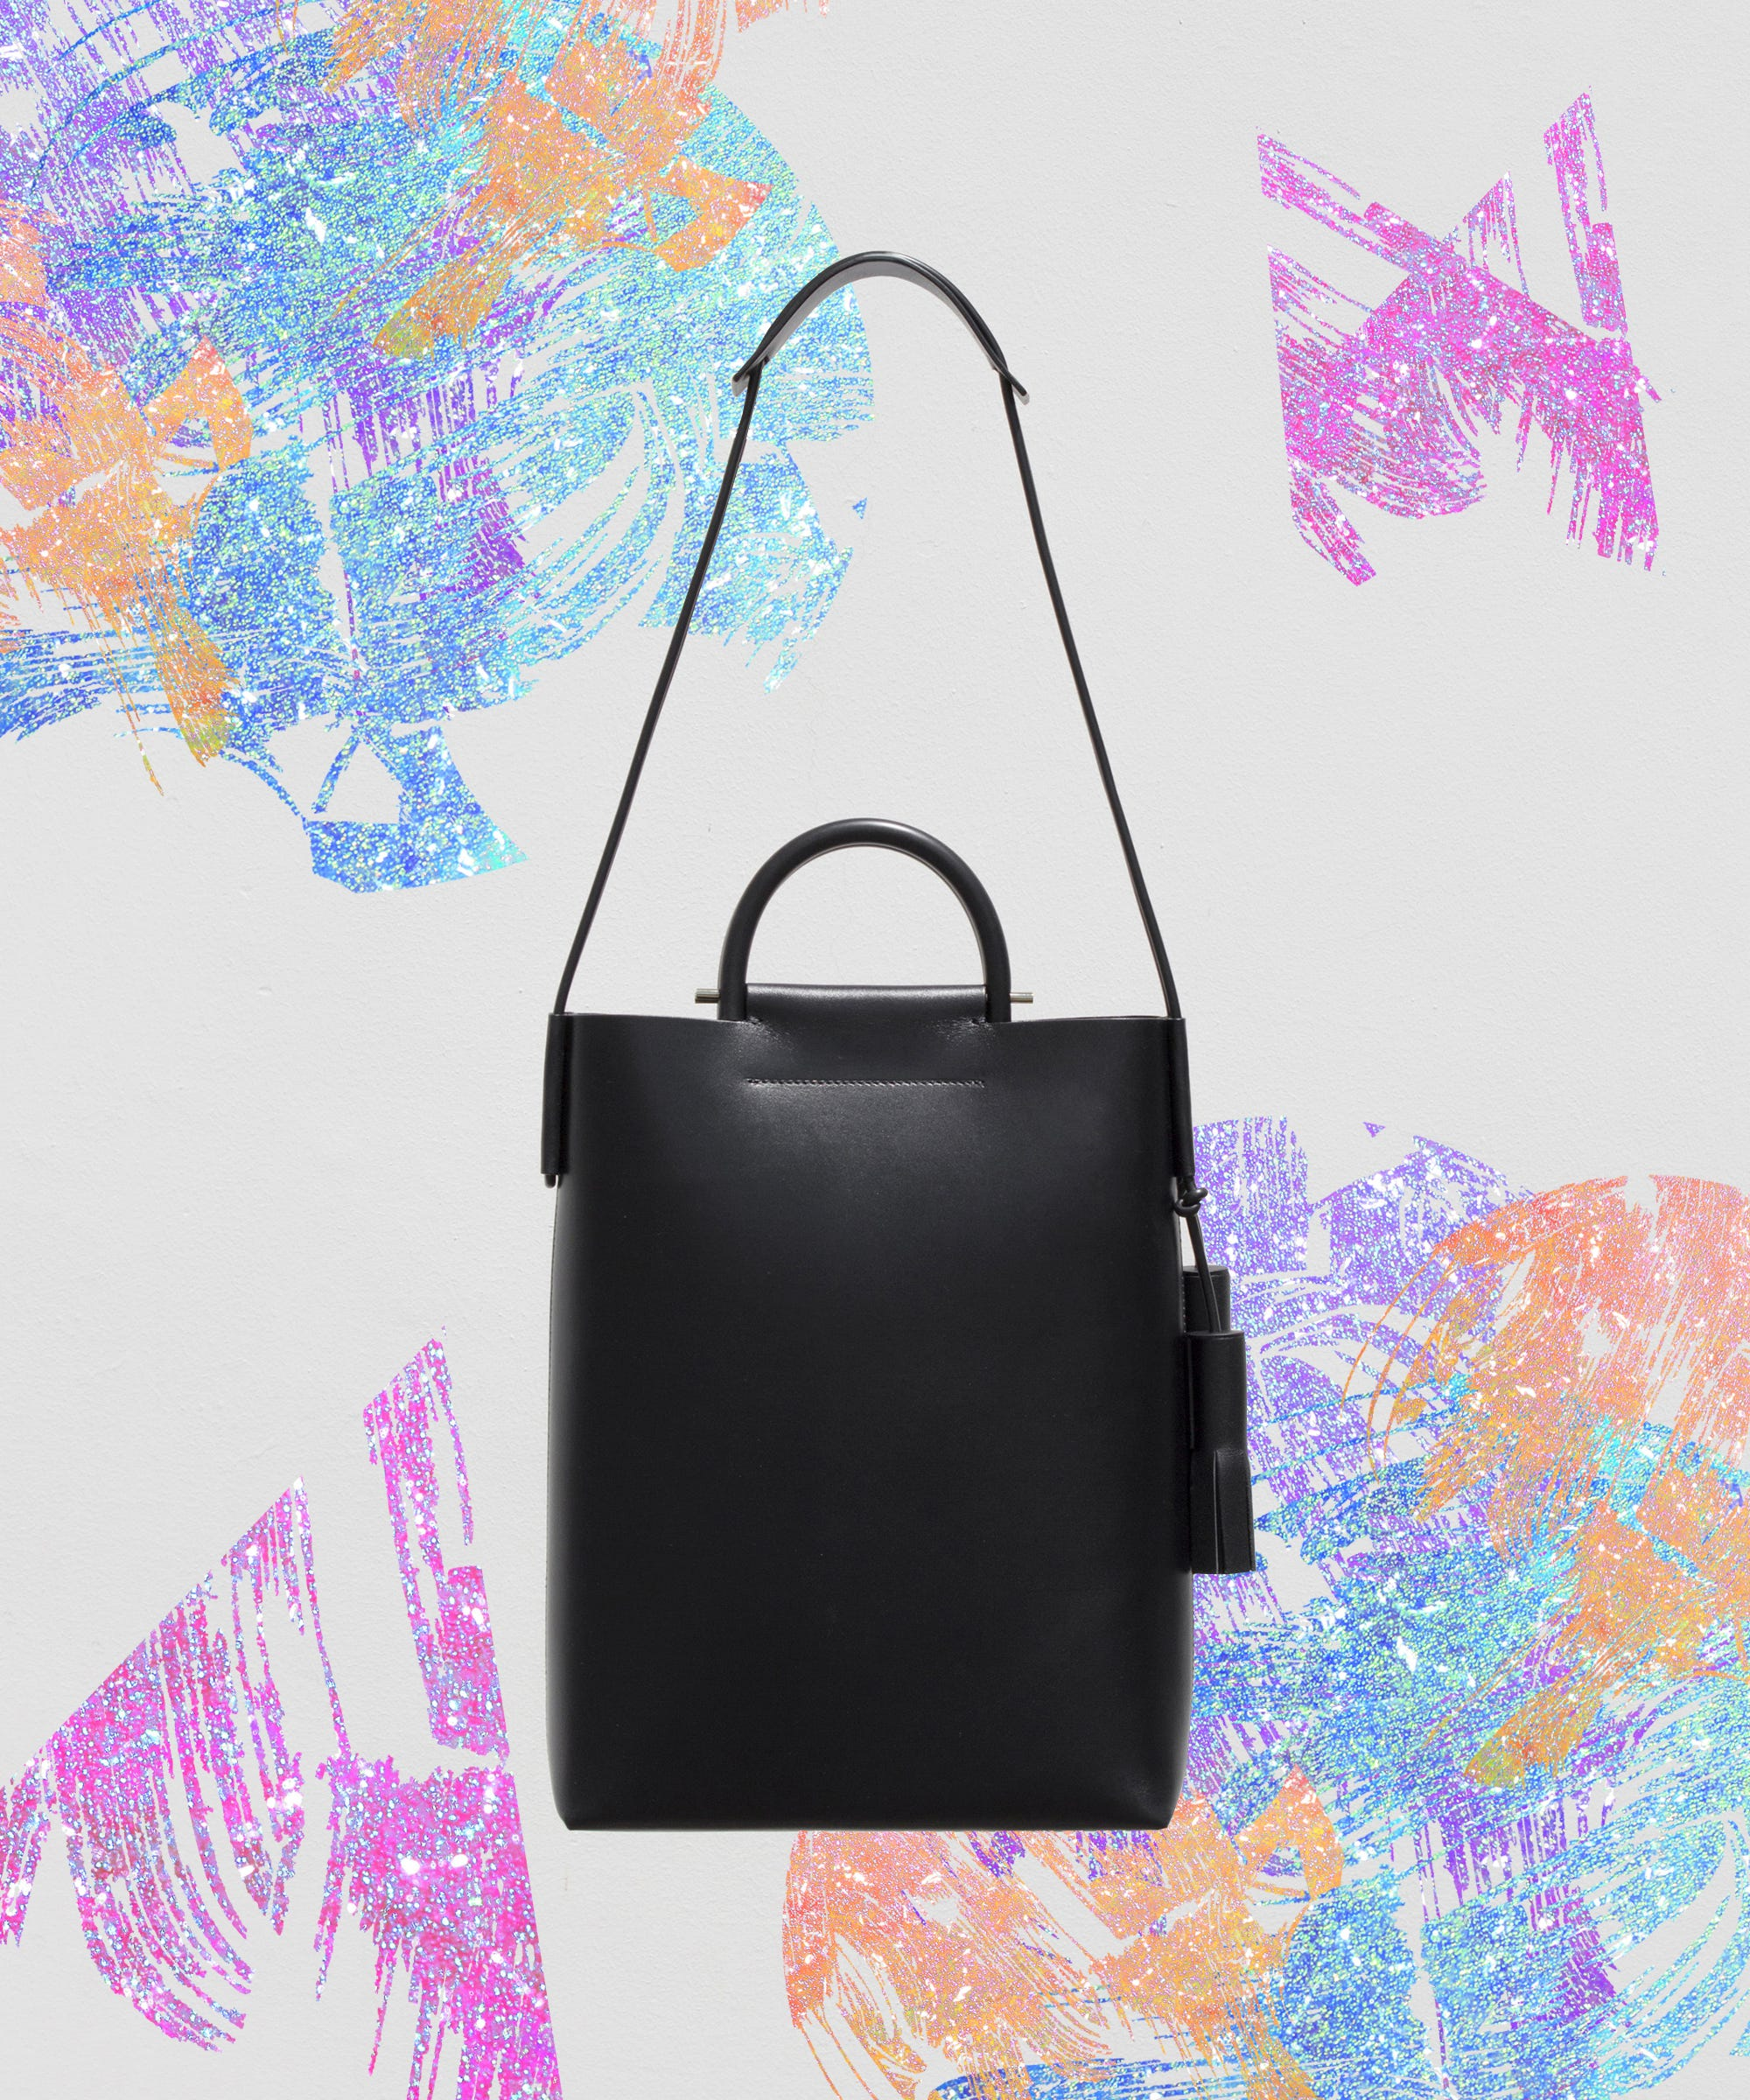 17 Non-Bulky Totes Perfect For Carrying Your Laptop In